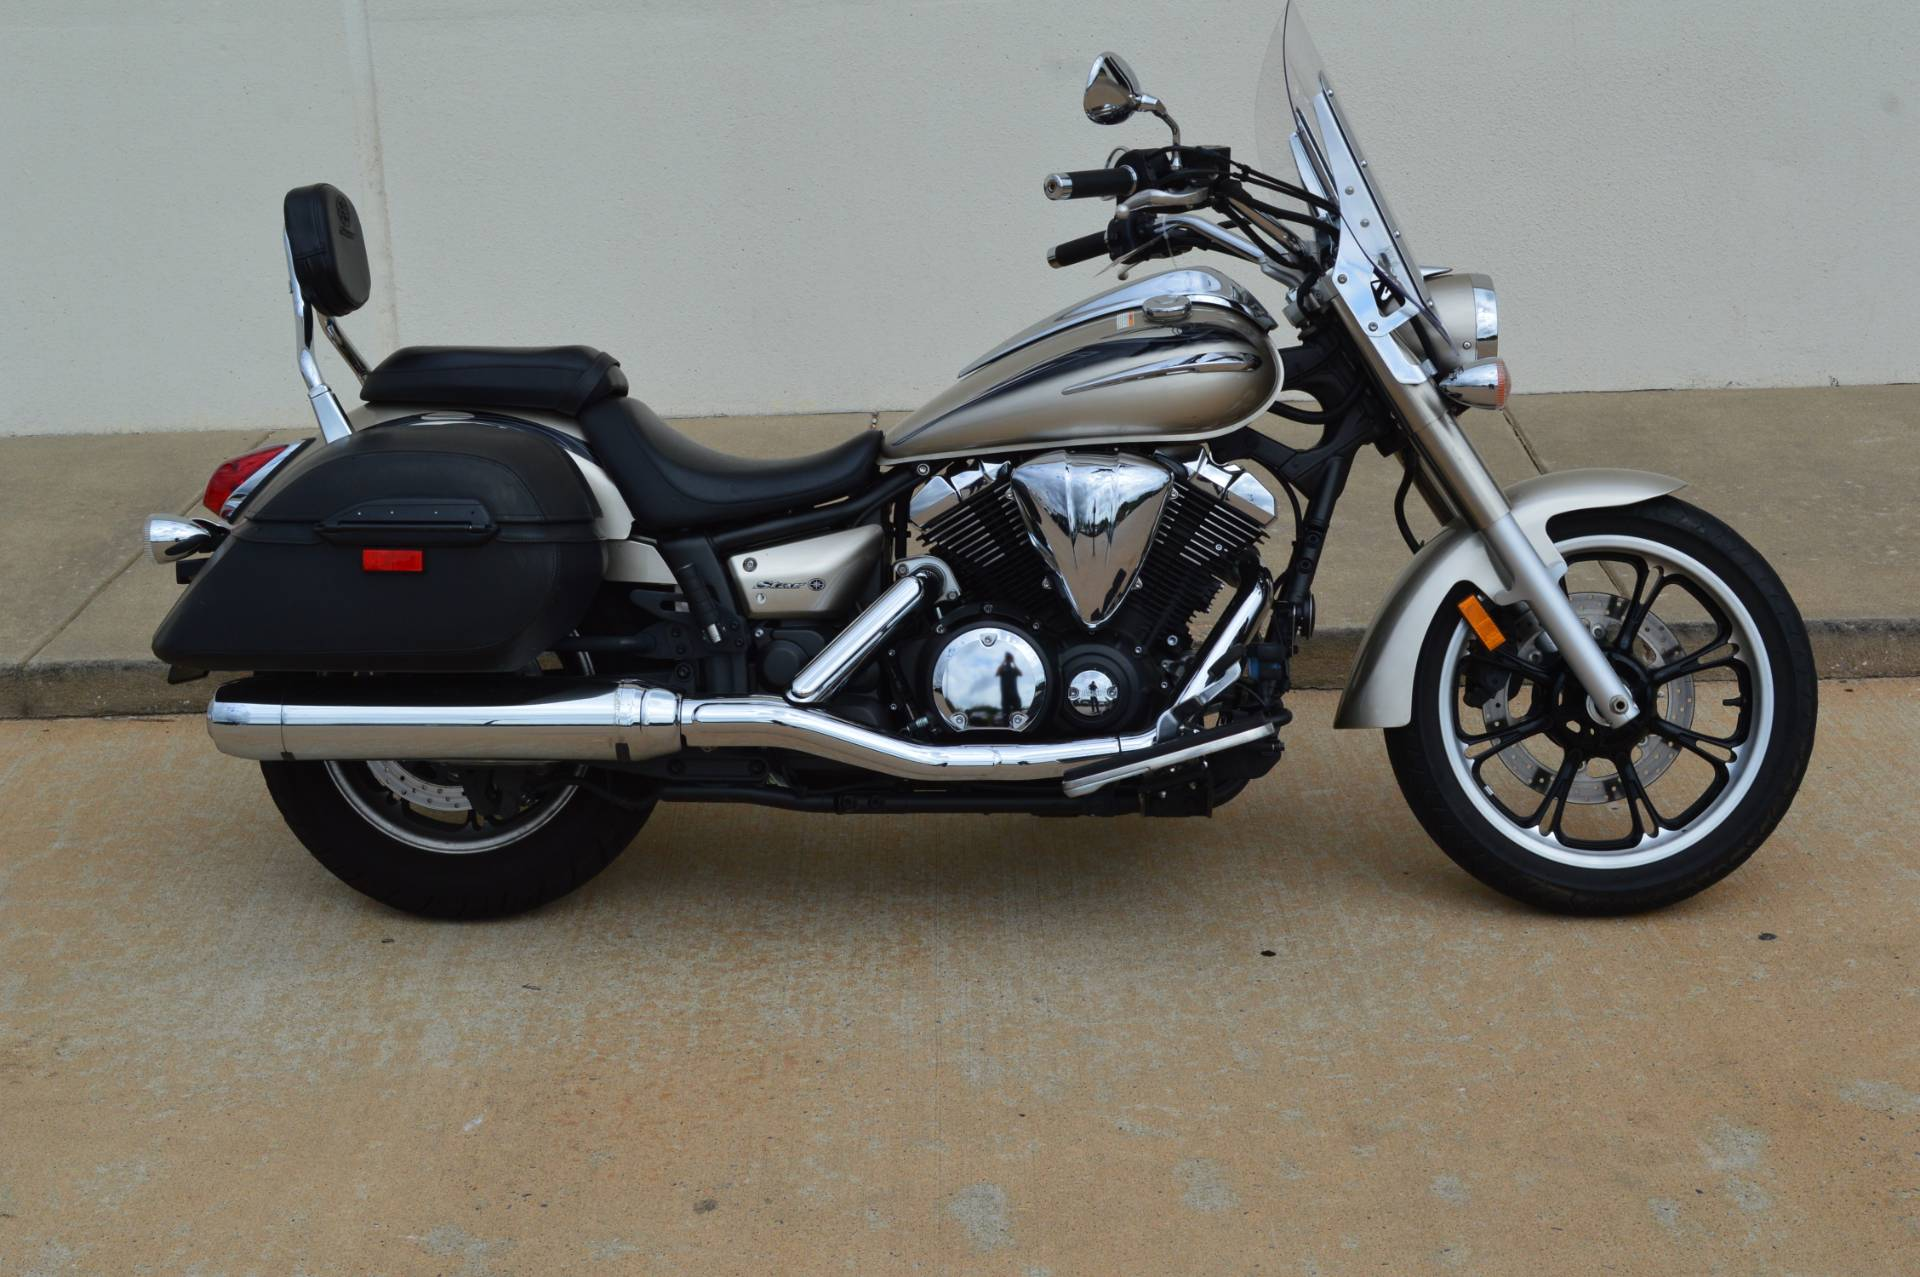 2010 yamaha v star 950 tourer motorcycles shawnee oklahoma for Yamaha motorcycles okc